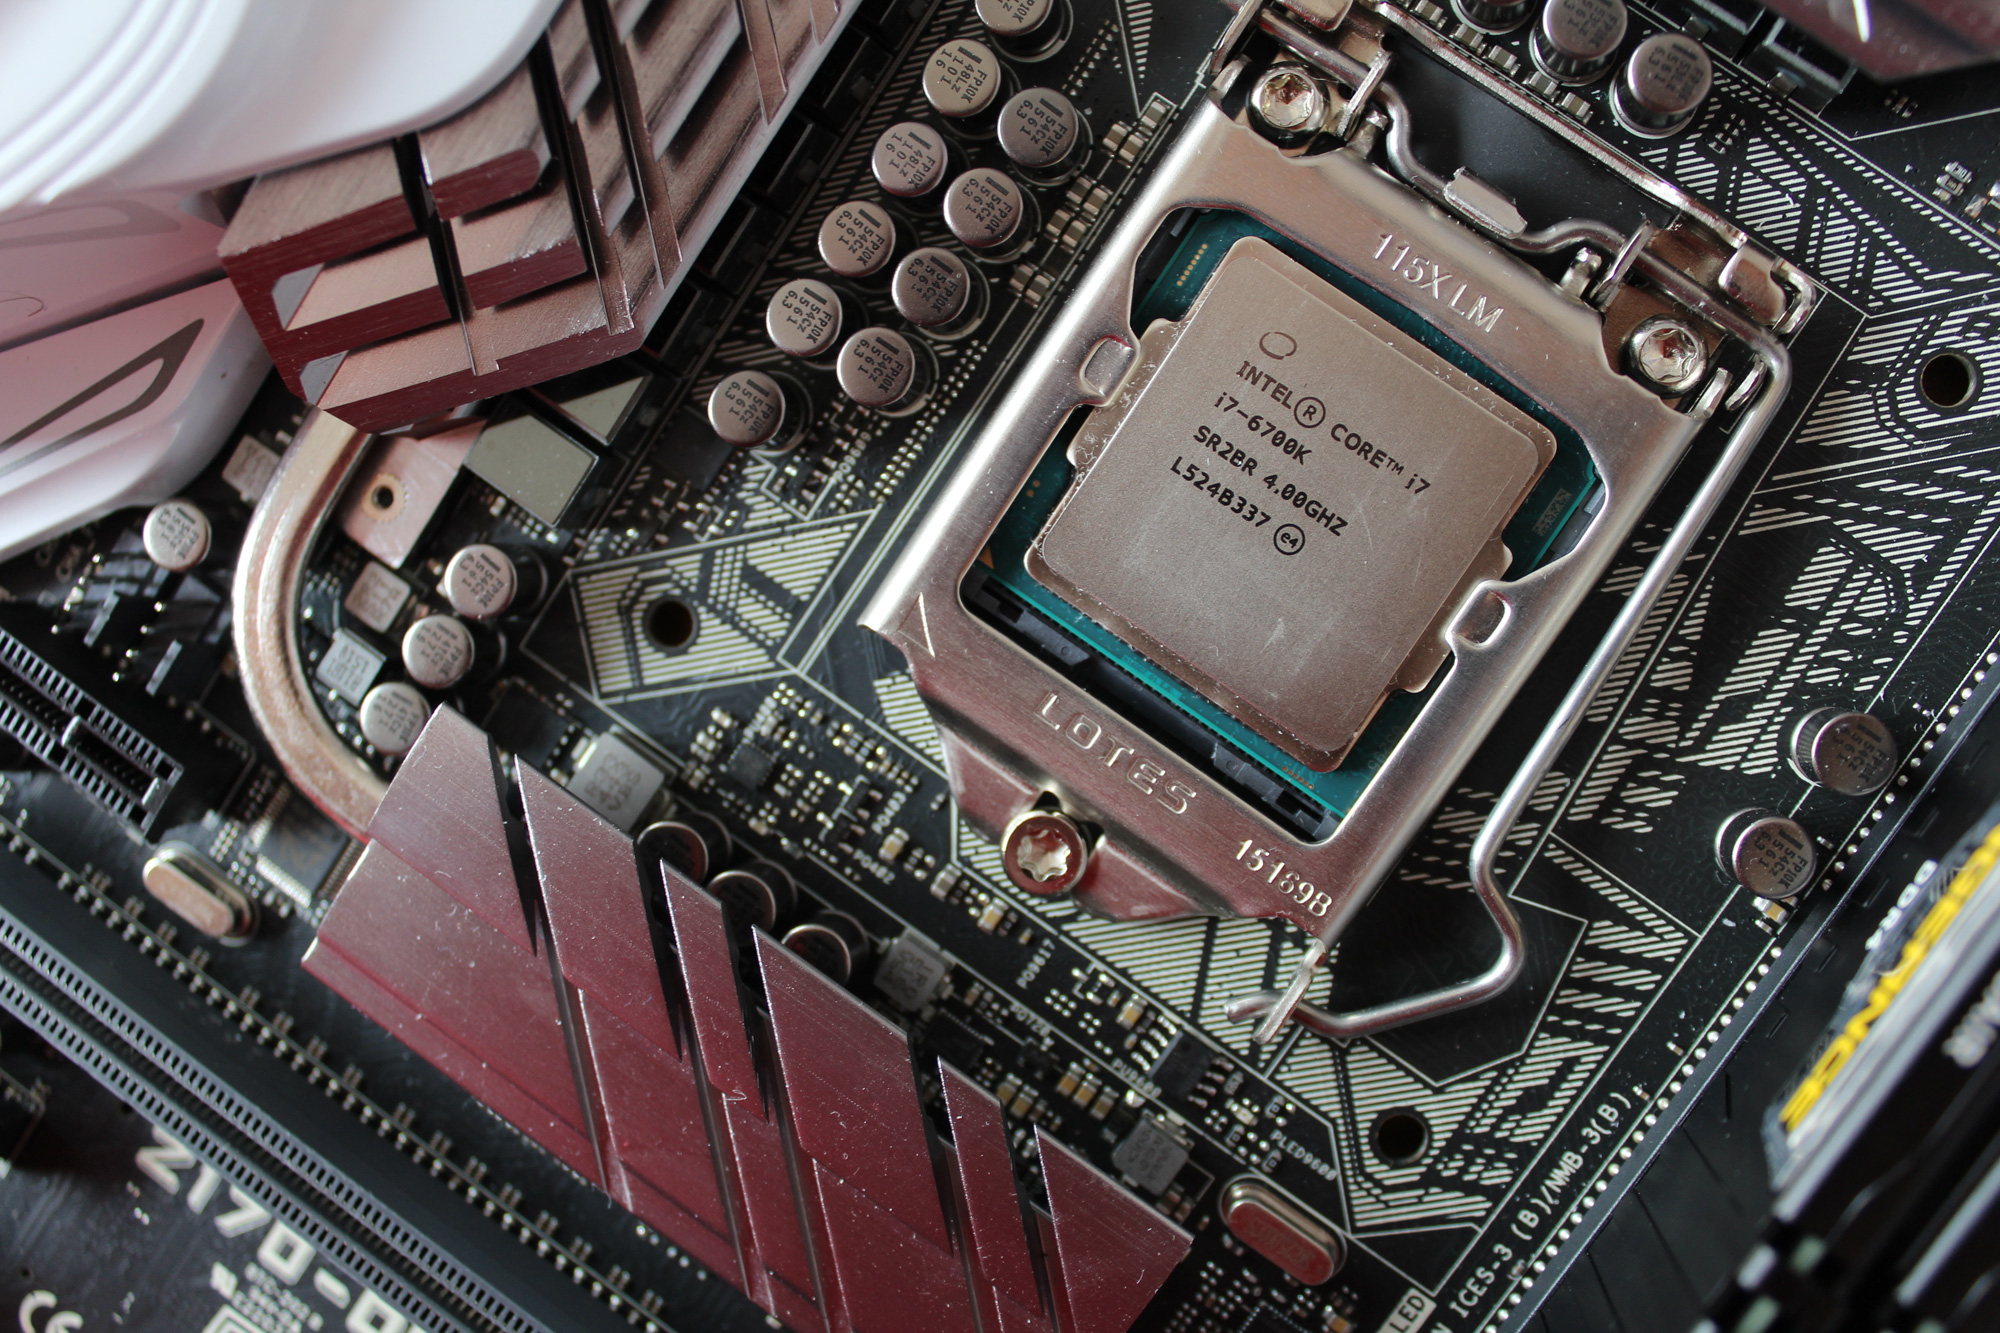 intel s skylake core i7 6700k reviewed modest gains from a full tick tock cycle ars technica. Black Bedroom Furniture Sets. Home Design Ideas